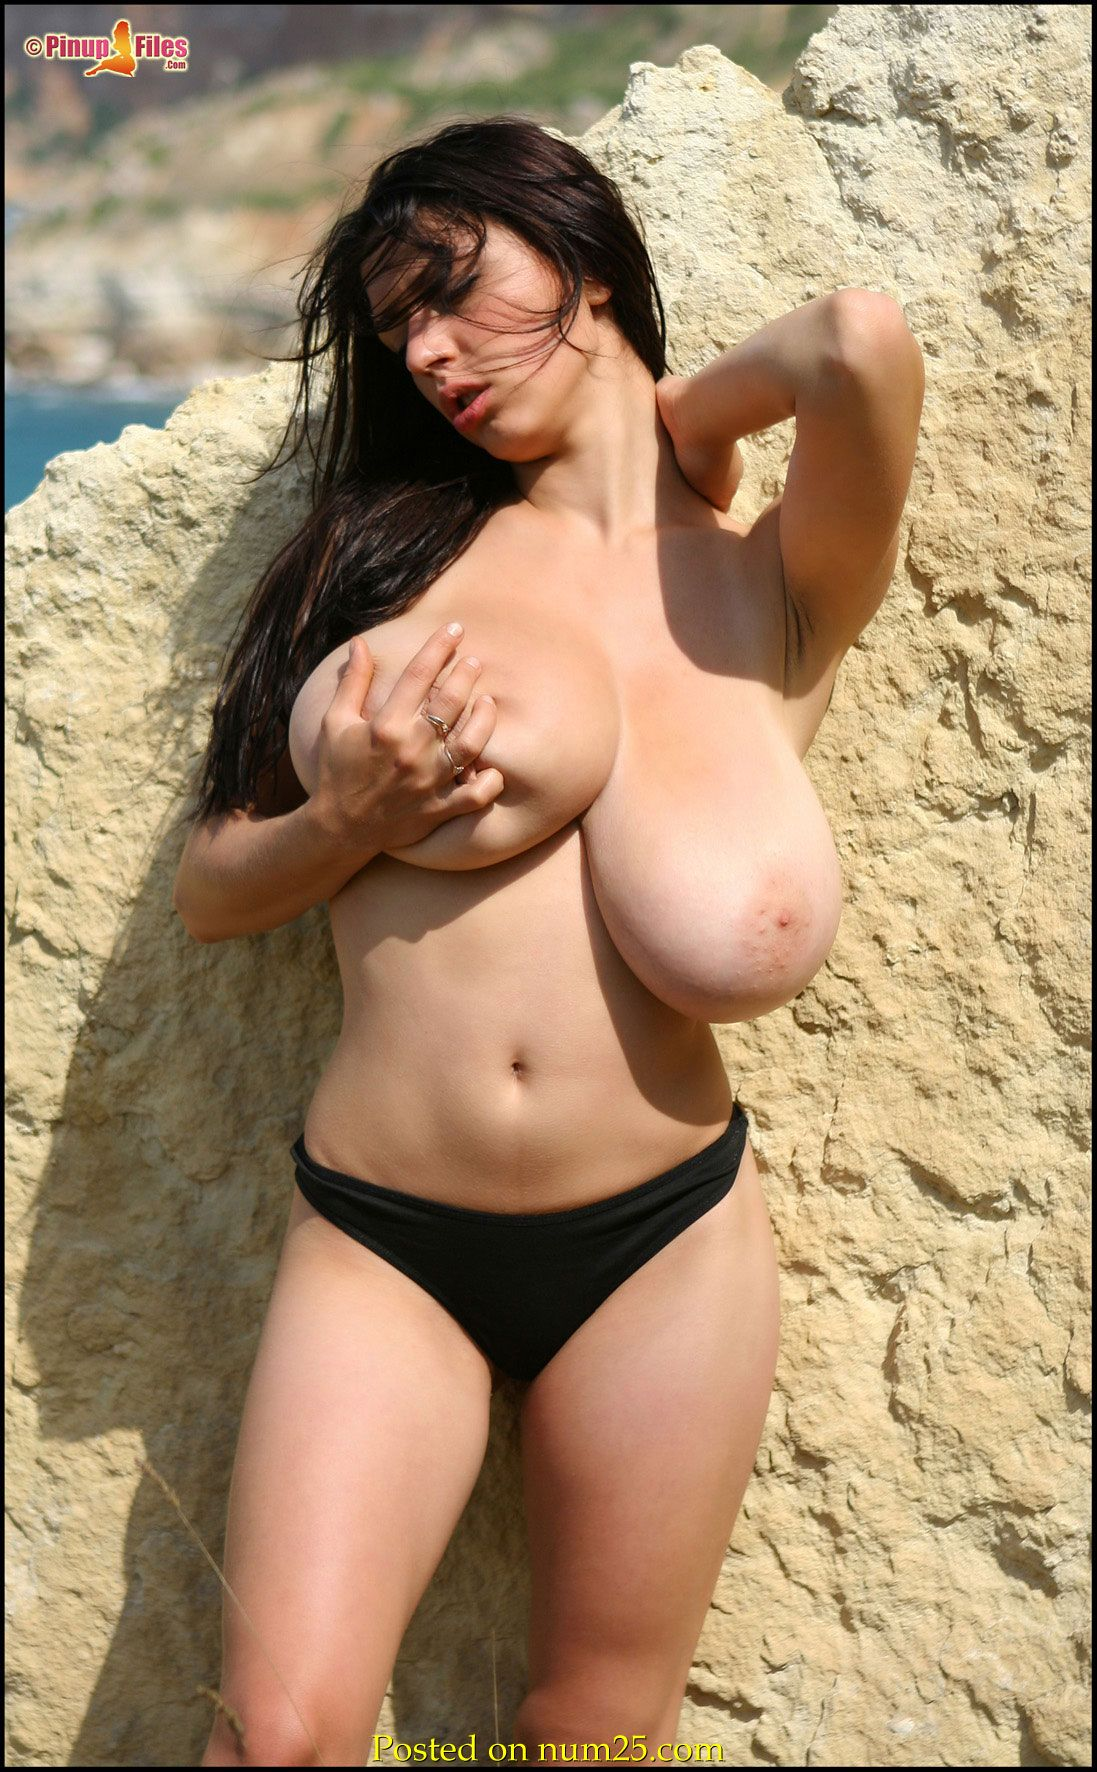 Big Tits On Beach Busty Merilyn Sakova PinupFiles 08 Australia's Nude Beach Plans